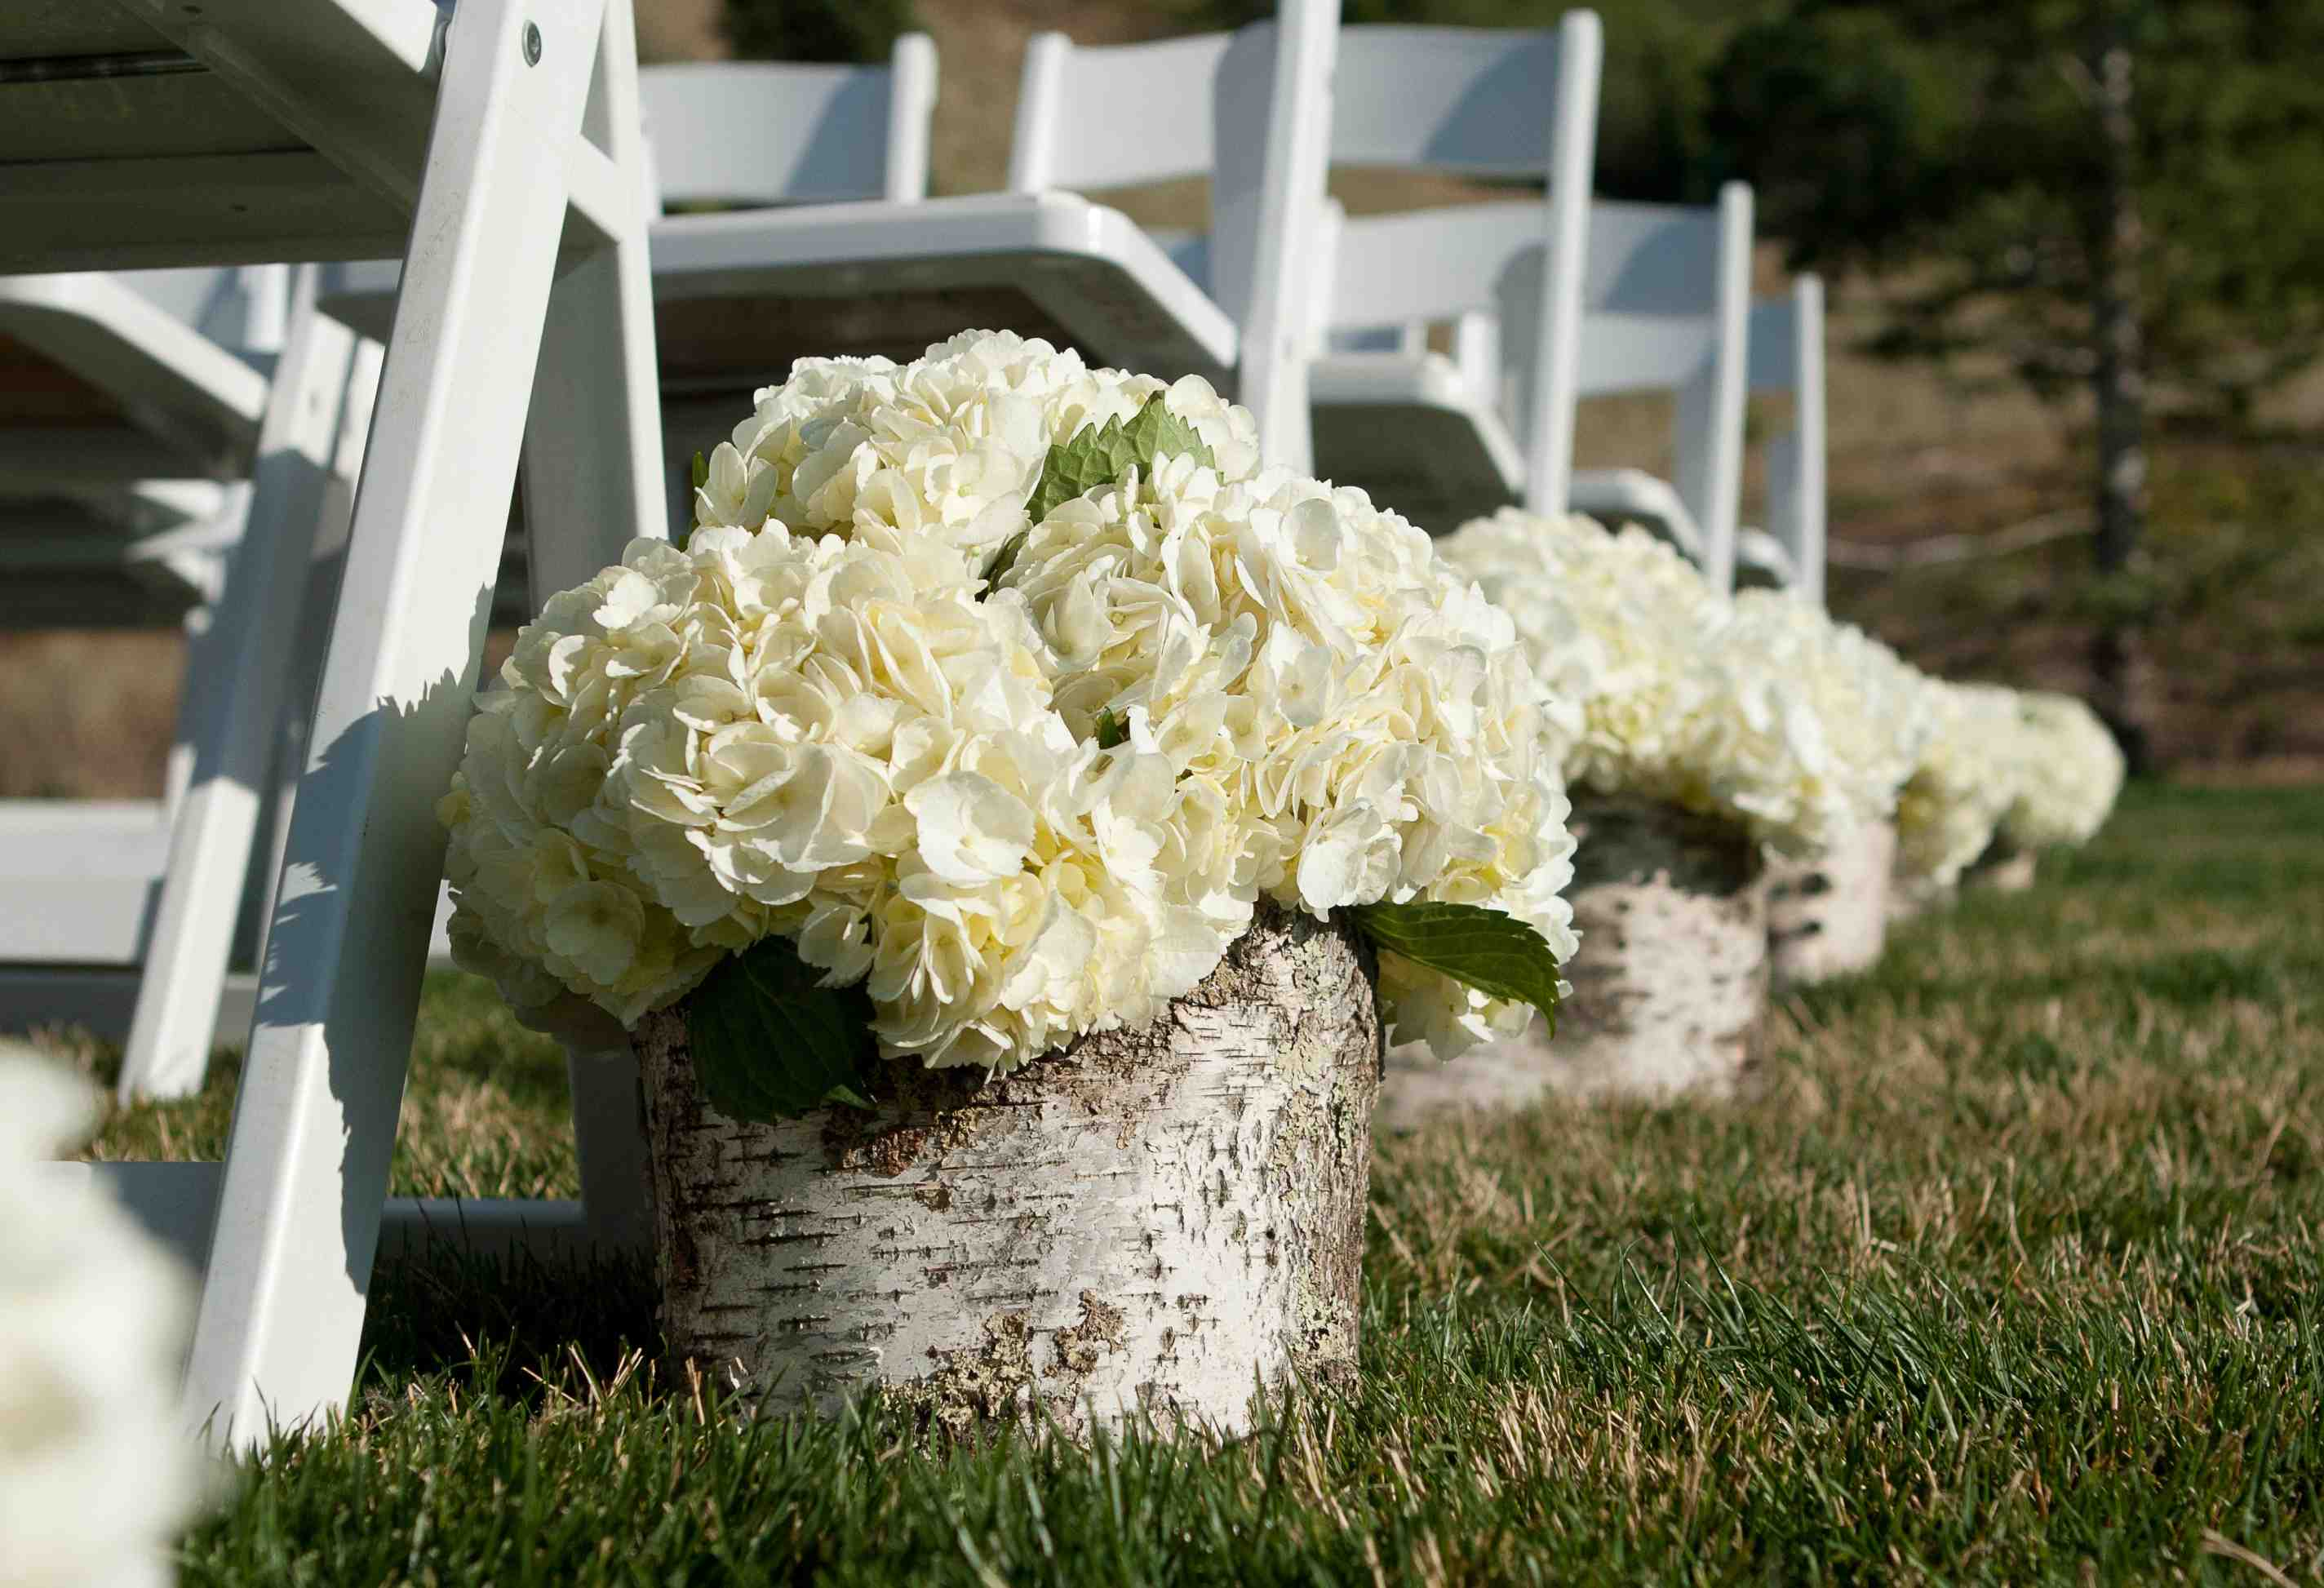 Tree stump ideas for wedding - Incorporate Tree Stumps Into Your Pastoral Big Day With These Chic Ideas